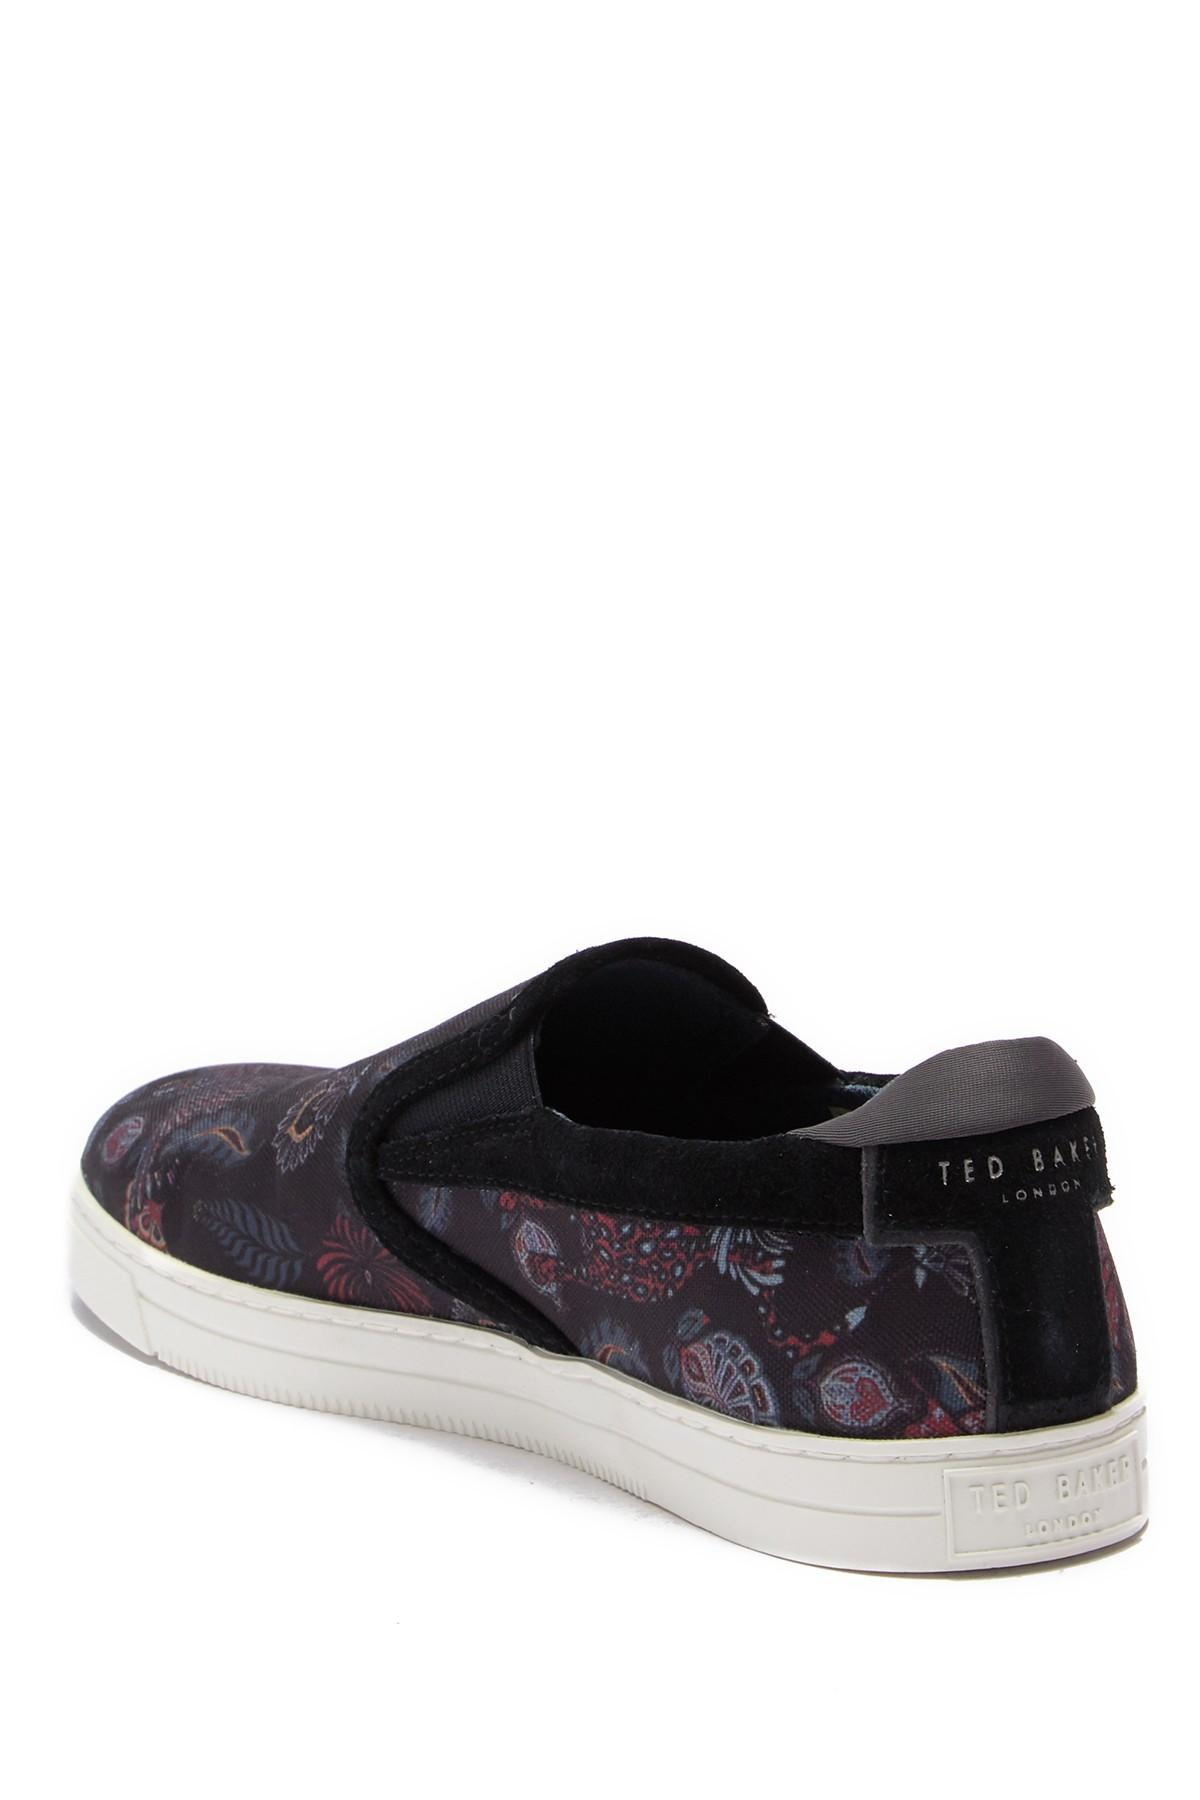 355cc5c8a Ted Baker - Multicolor Mhako Printed Slip-on Sneaker for Men - Lyst. View  fullscreen